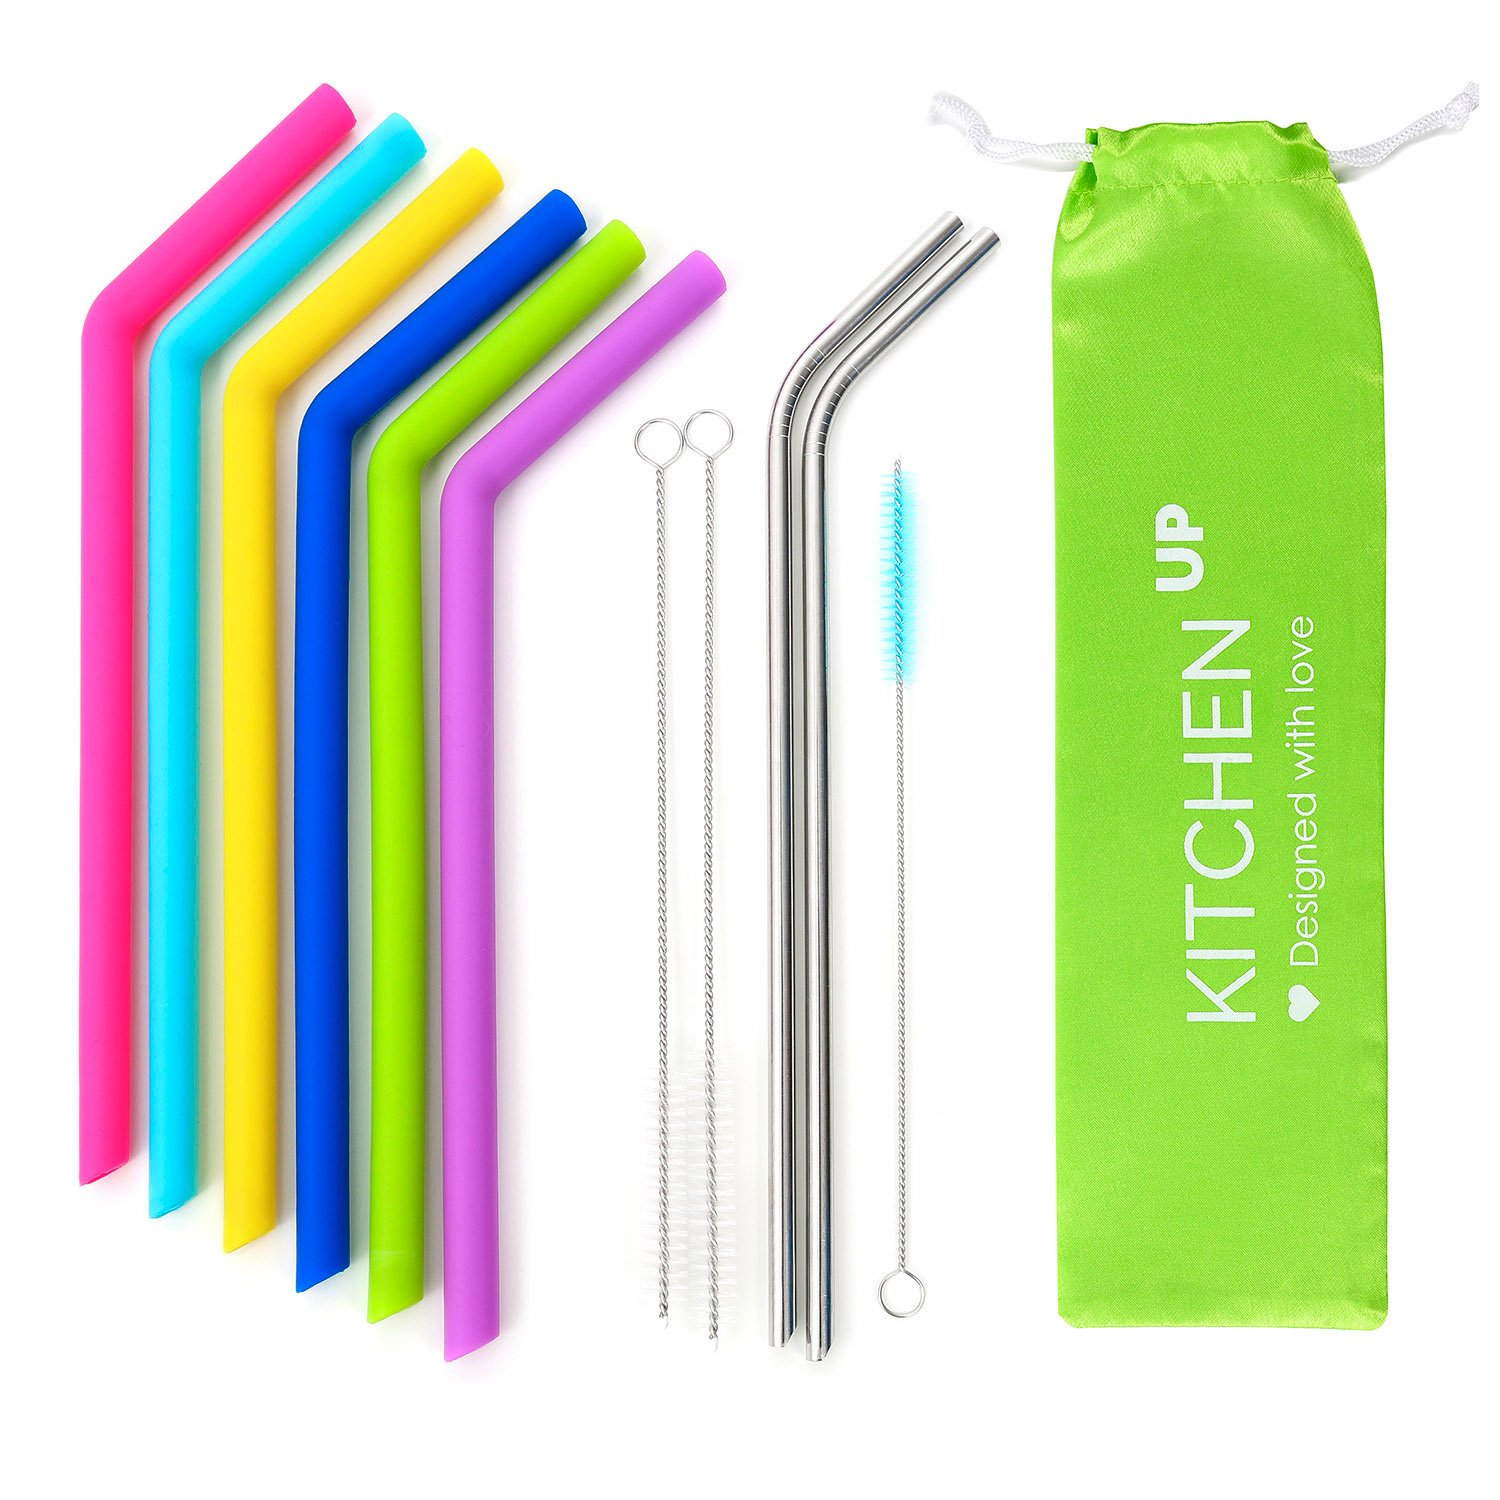 Big Silicone Straws for 30 oz Tumbler Yeti/Rtic Complete Bundle - Reusable Silicone Straws Set of 6 - Stainless Steel Straws Extra Long - Brushes and Storage Pouch Included by Kitchen Up (Image #2)